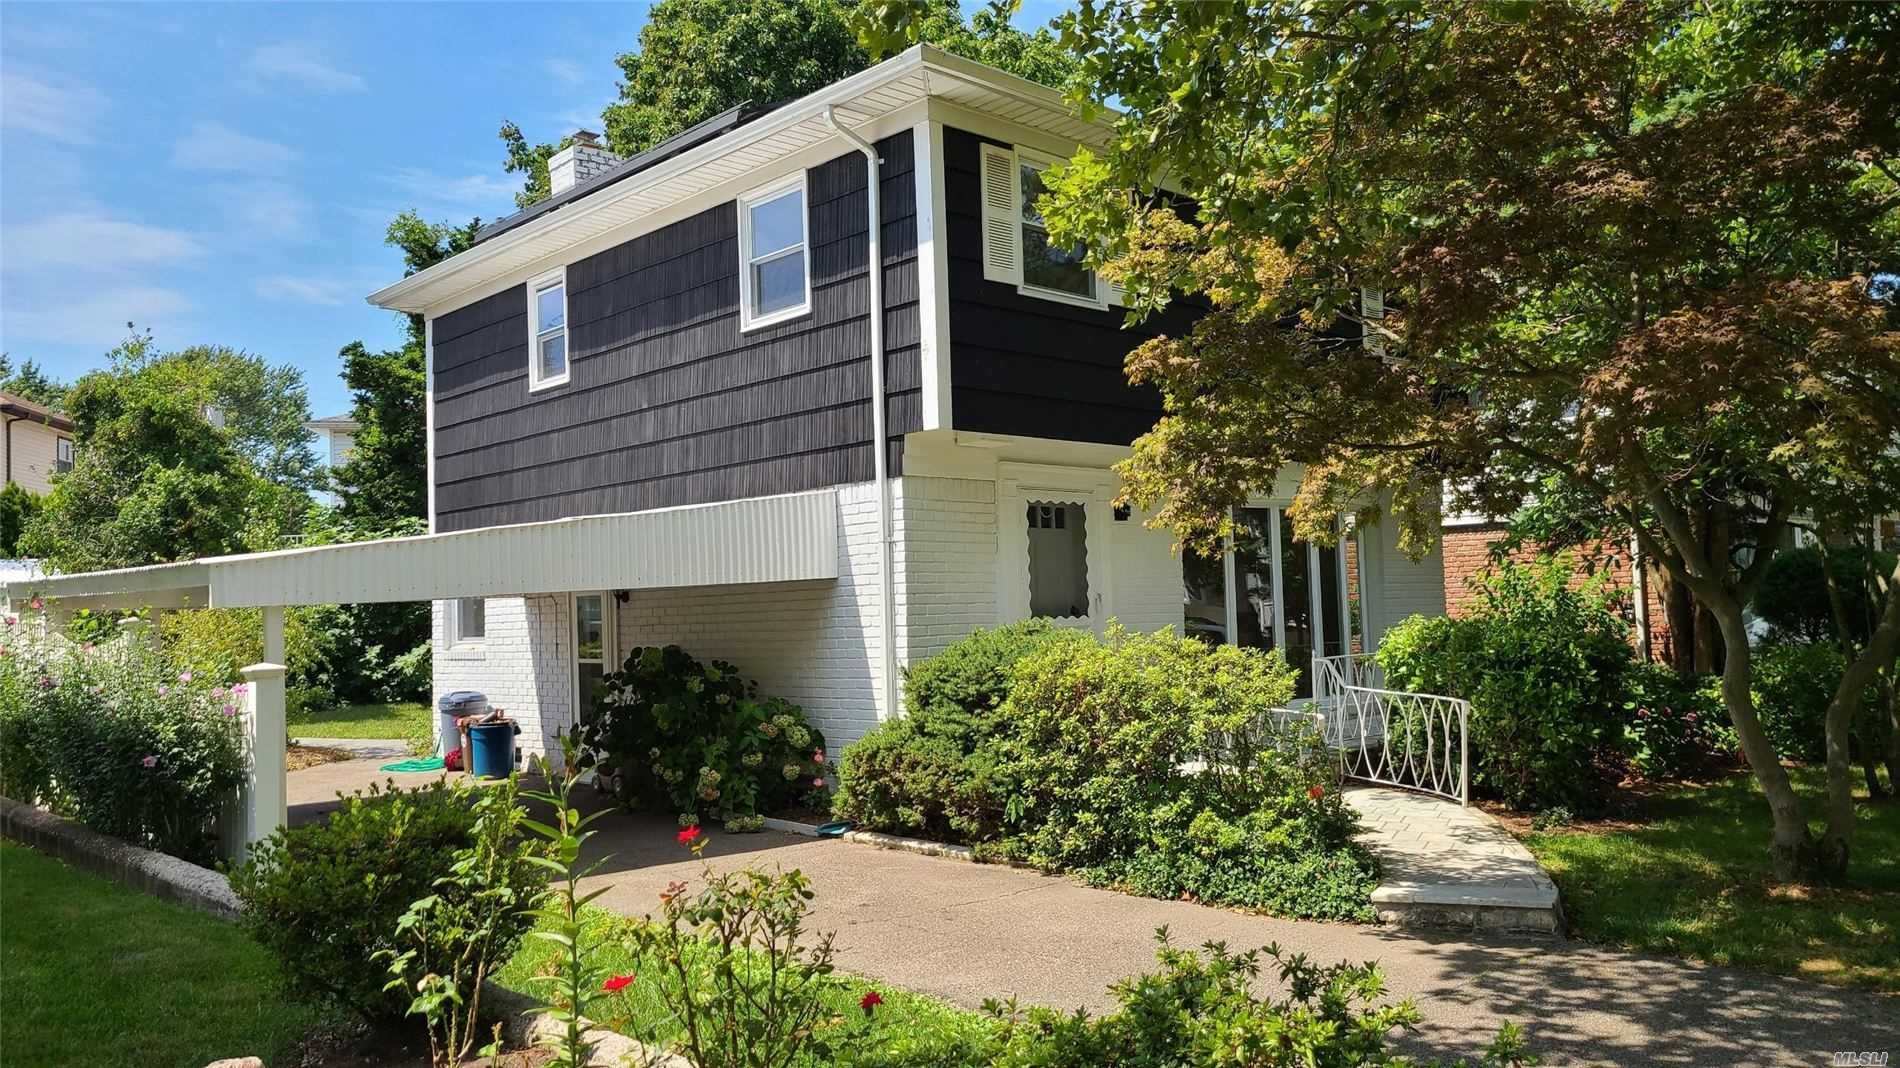 5710 Hewlett Street, Little Neck, NY 11362 - MLS#: 3242995